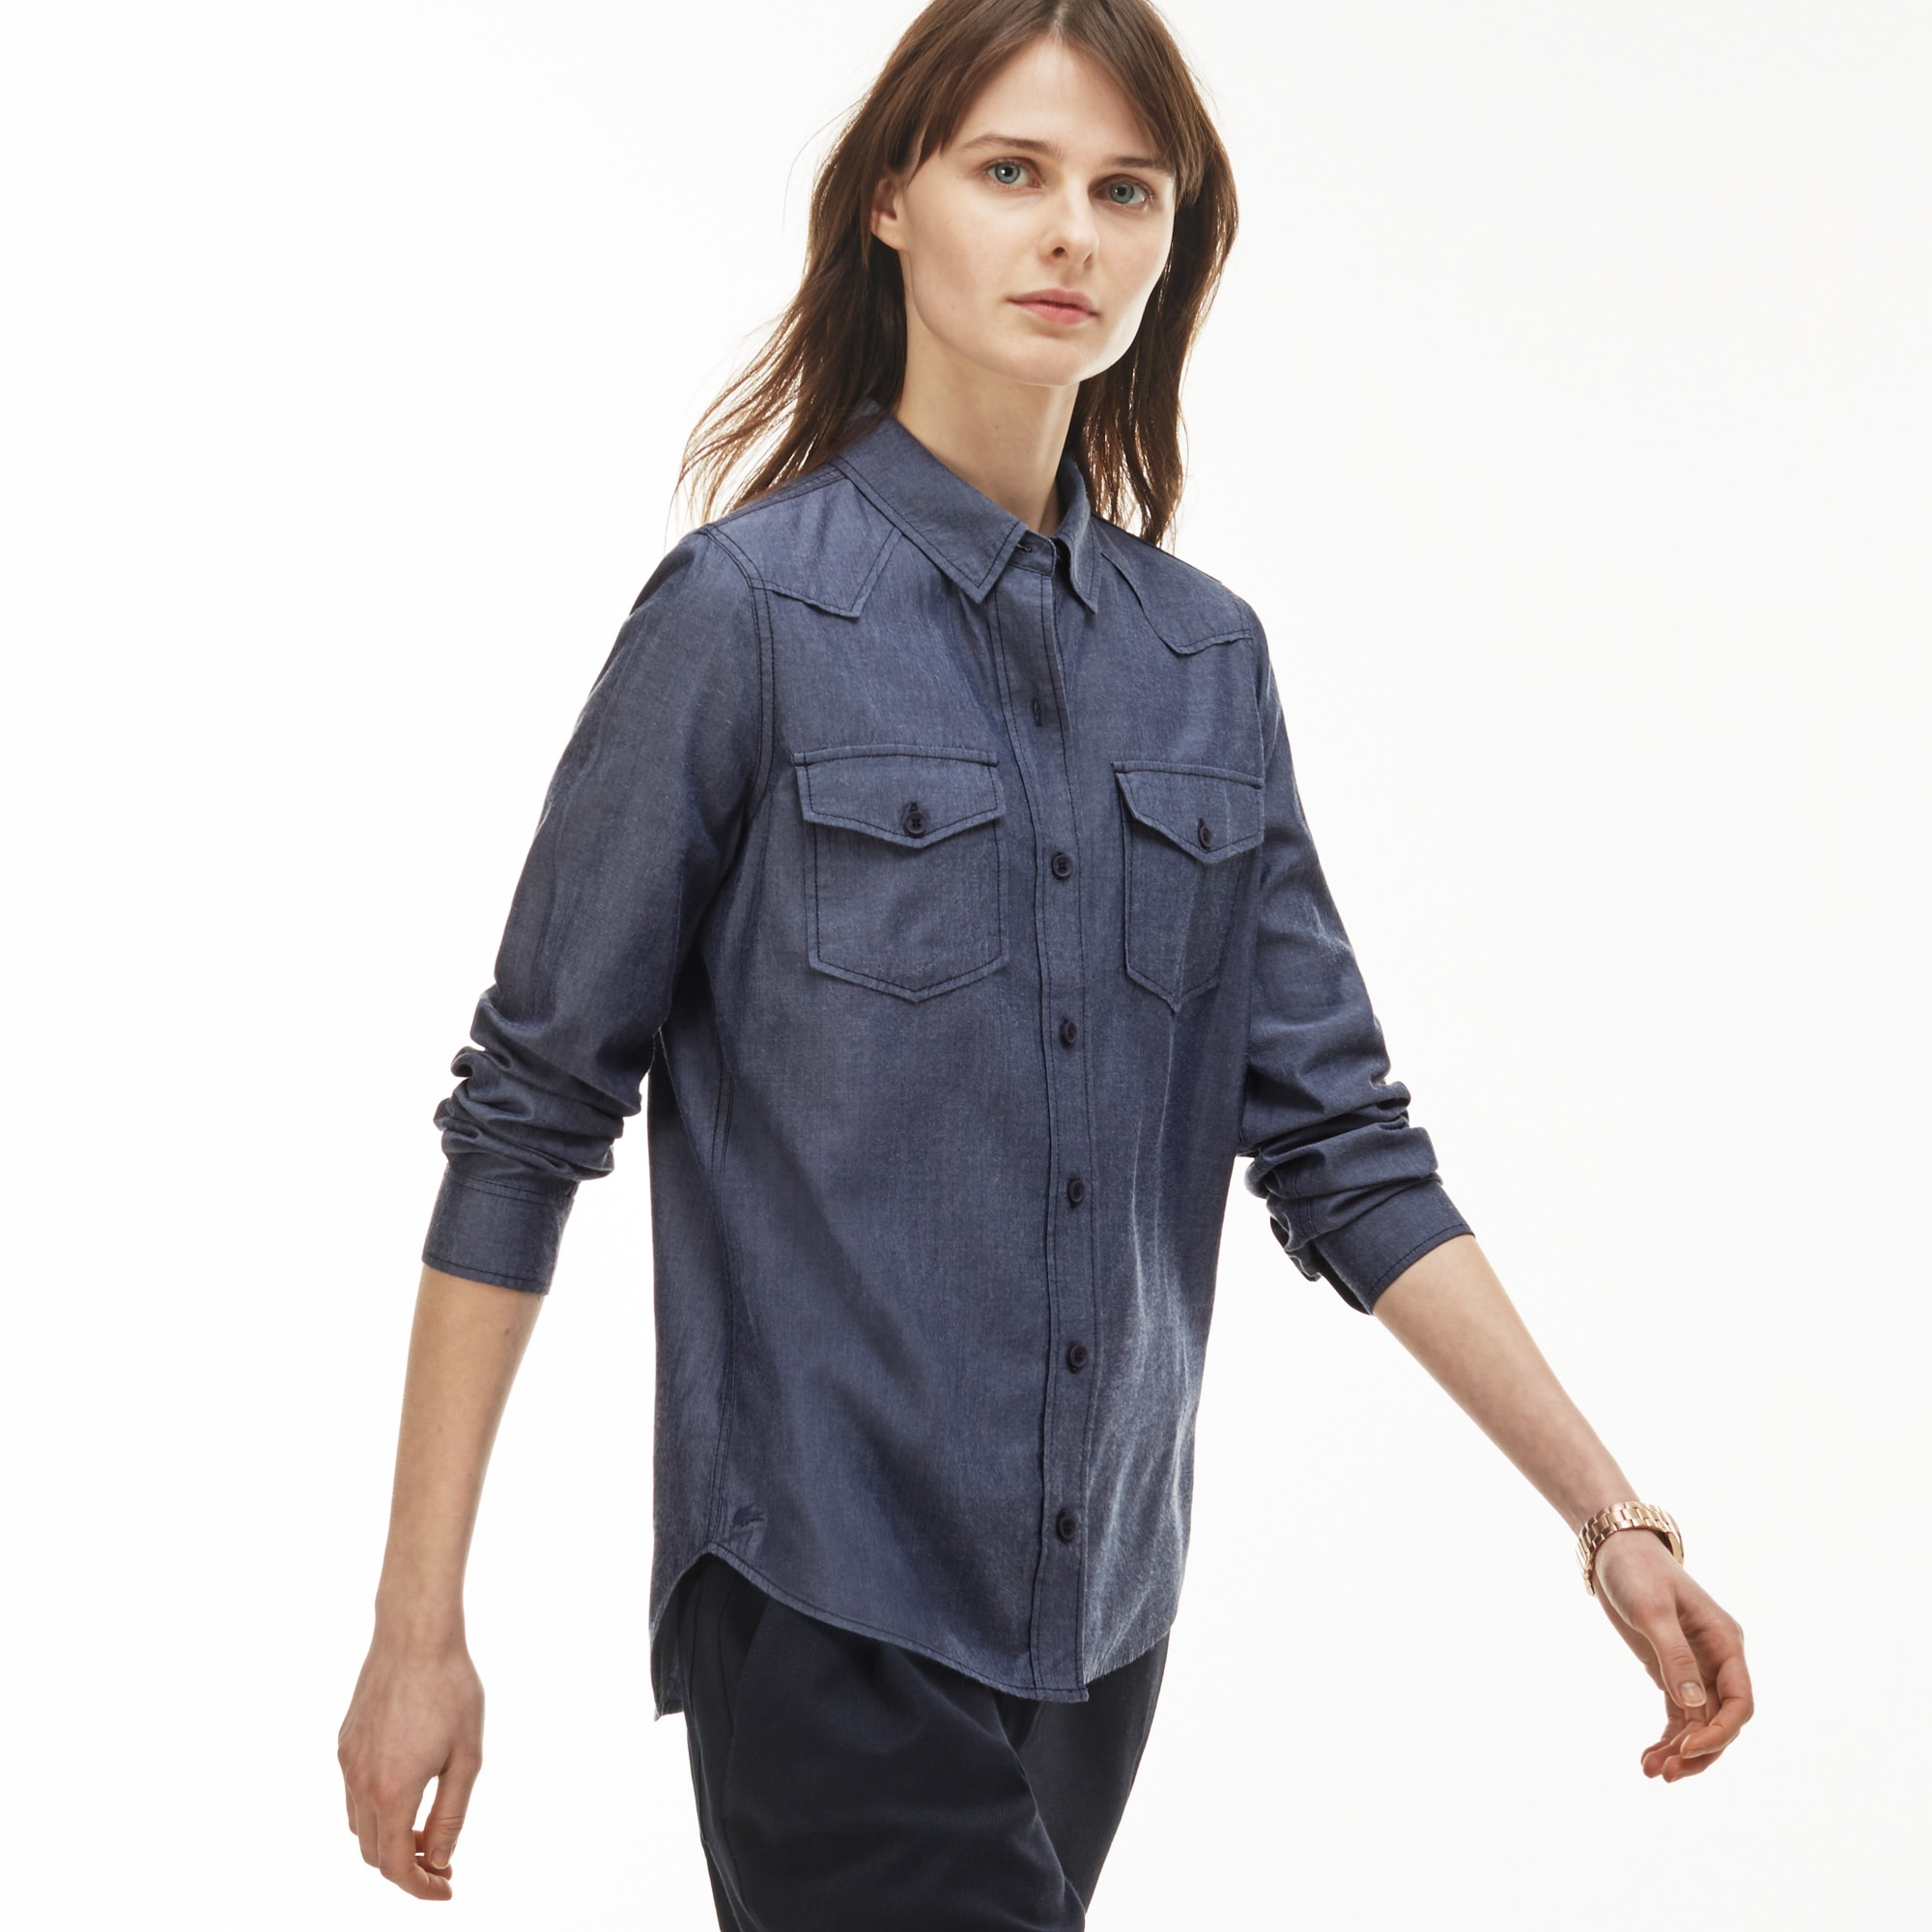 Women's Slim Fit Denim Effect Cotton Chambray Shirt